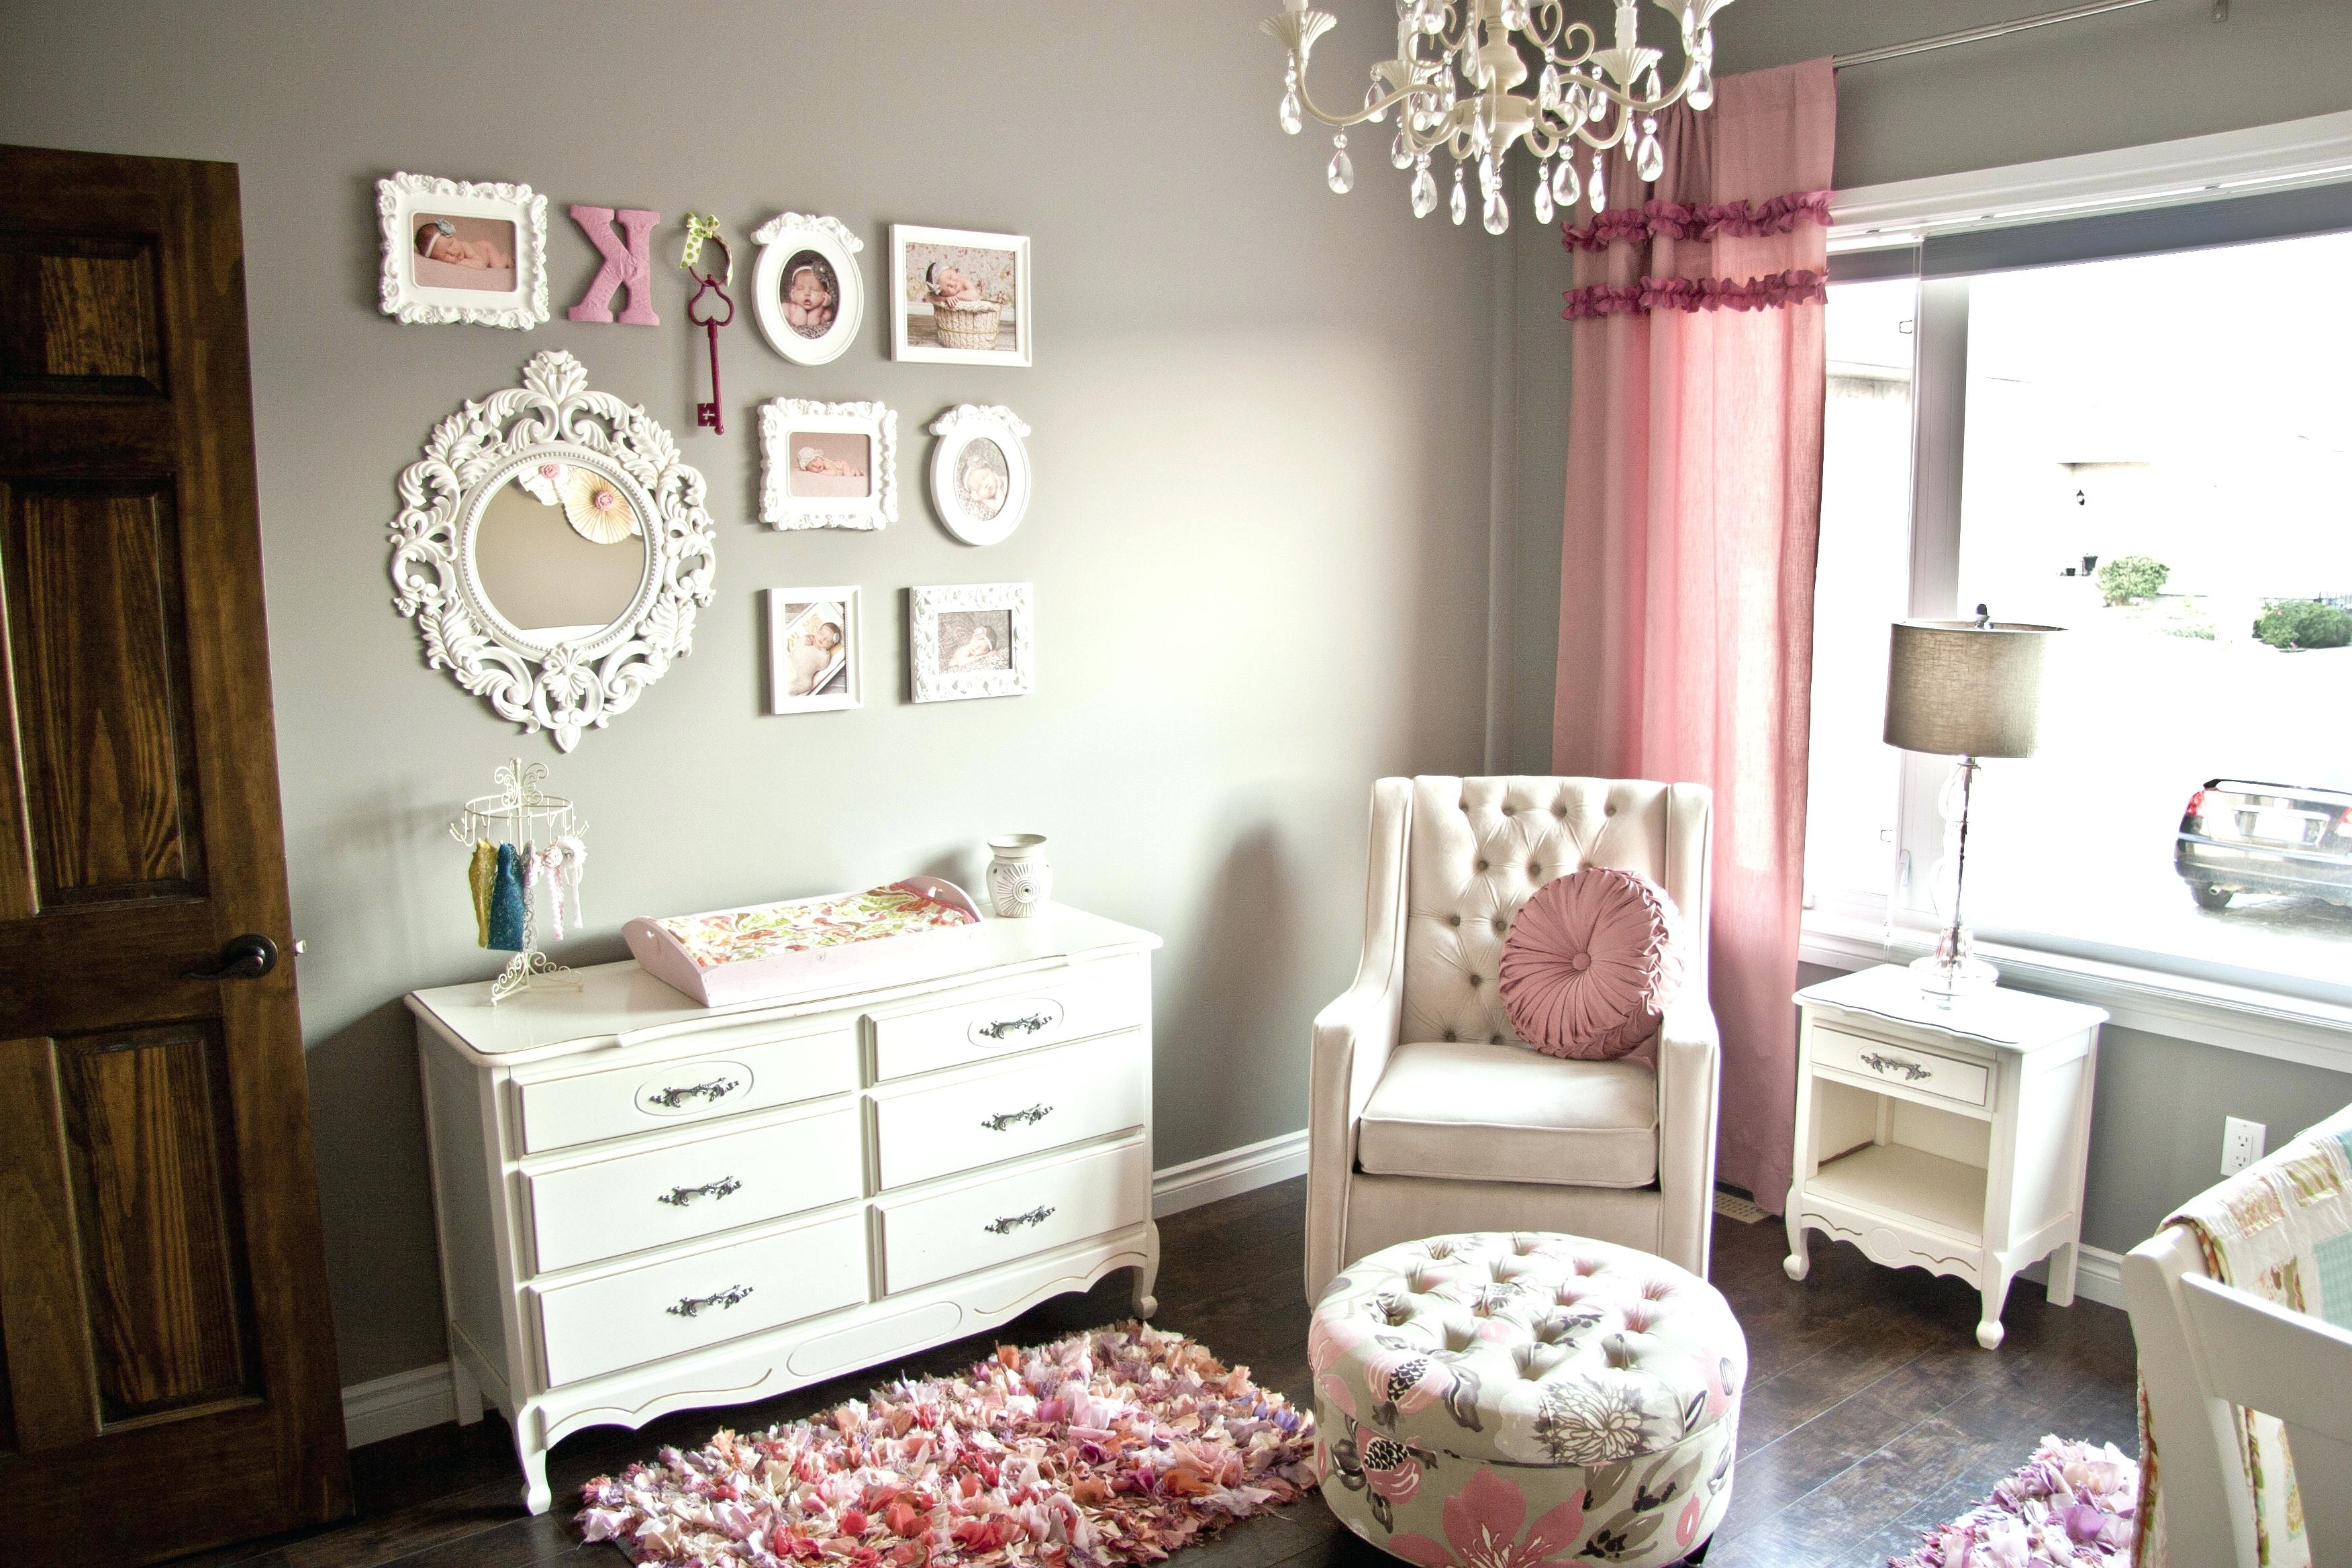 Rectangular Crystal Chandelier Dining Room Including Baby Nursery In Favorite Chandeliers For Girl Nursery (View 19 of 20)